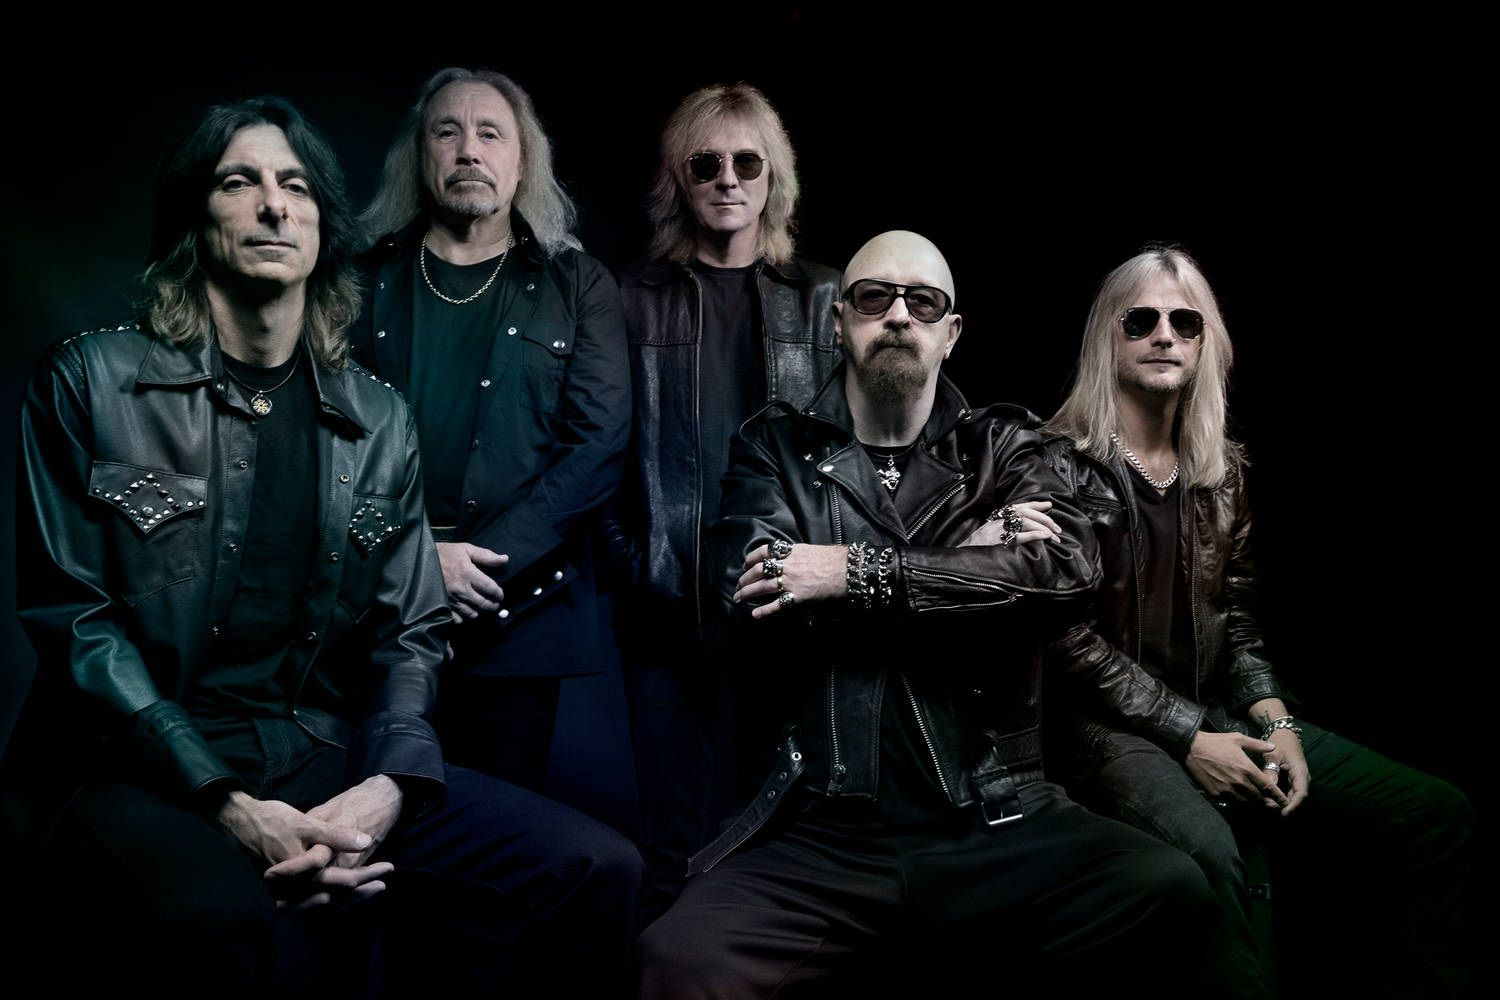 Judas Priest To Tour South Africa In 2019 photo